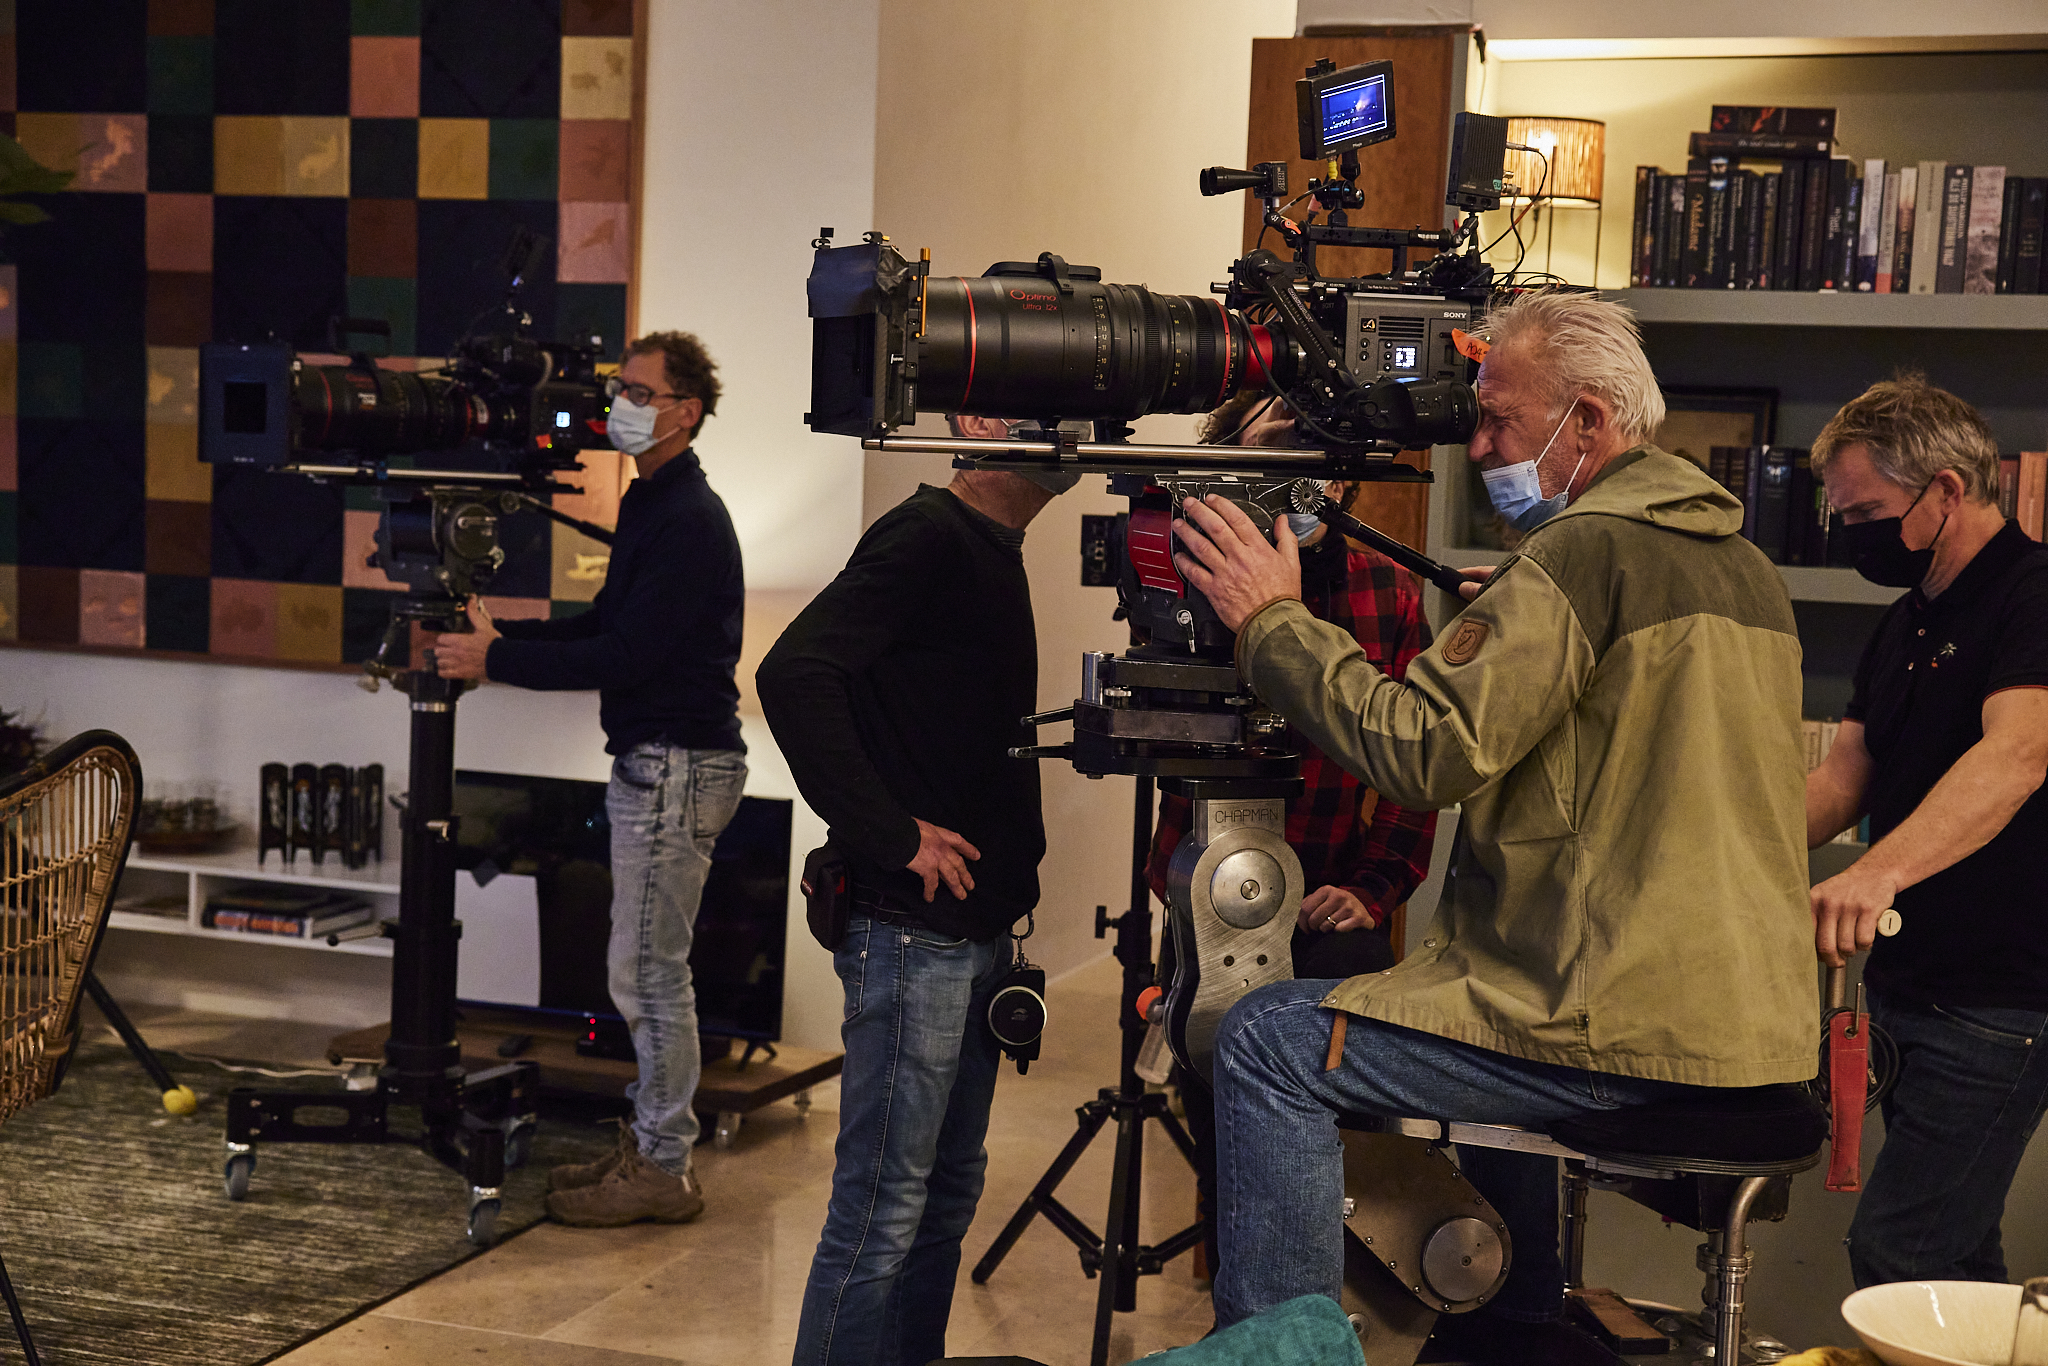 TWO OPTIMO ULTRA 12X INVITED To A SPECIAL DINNER